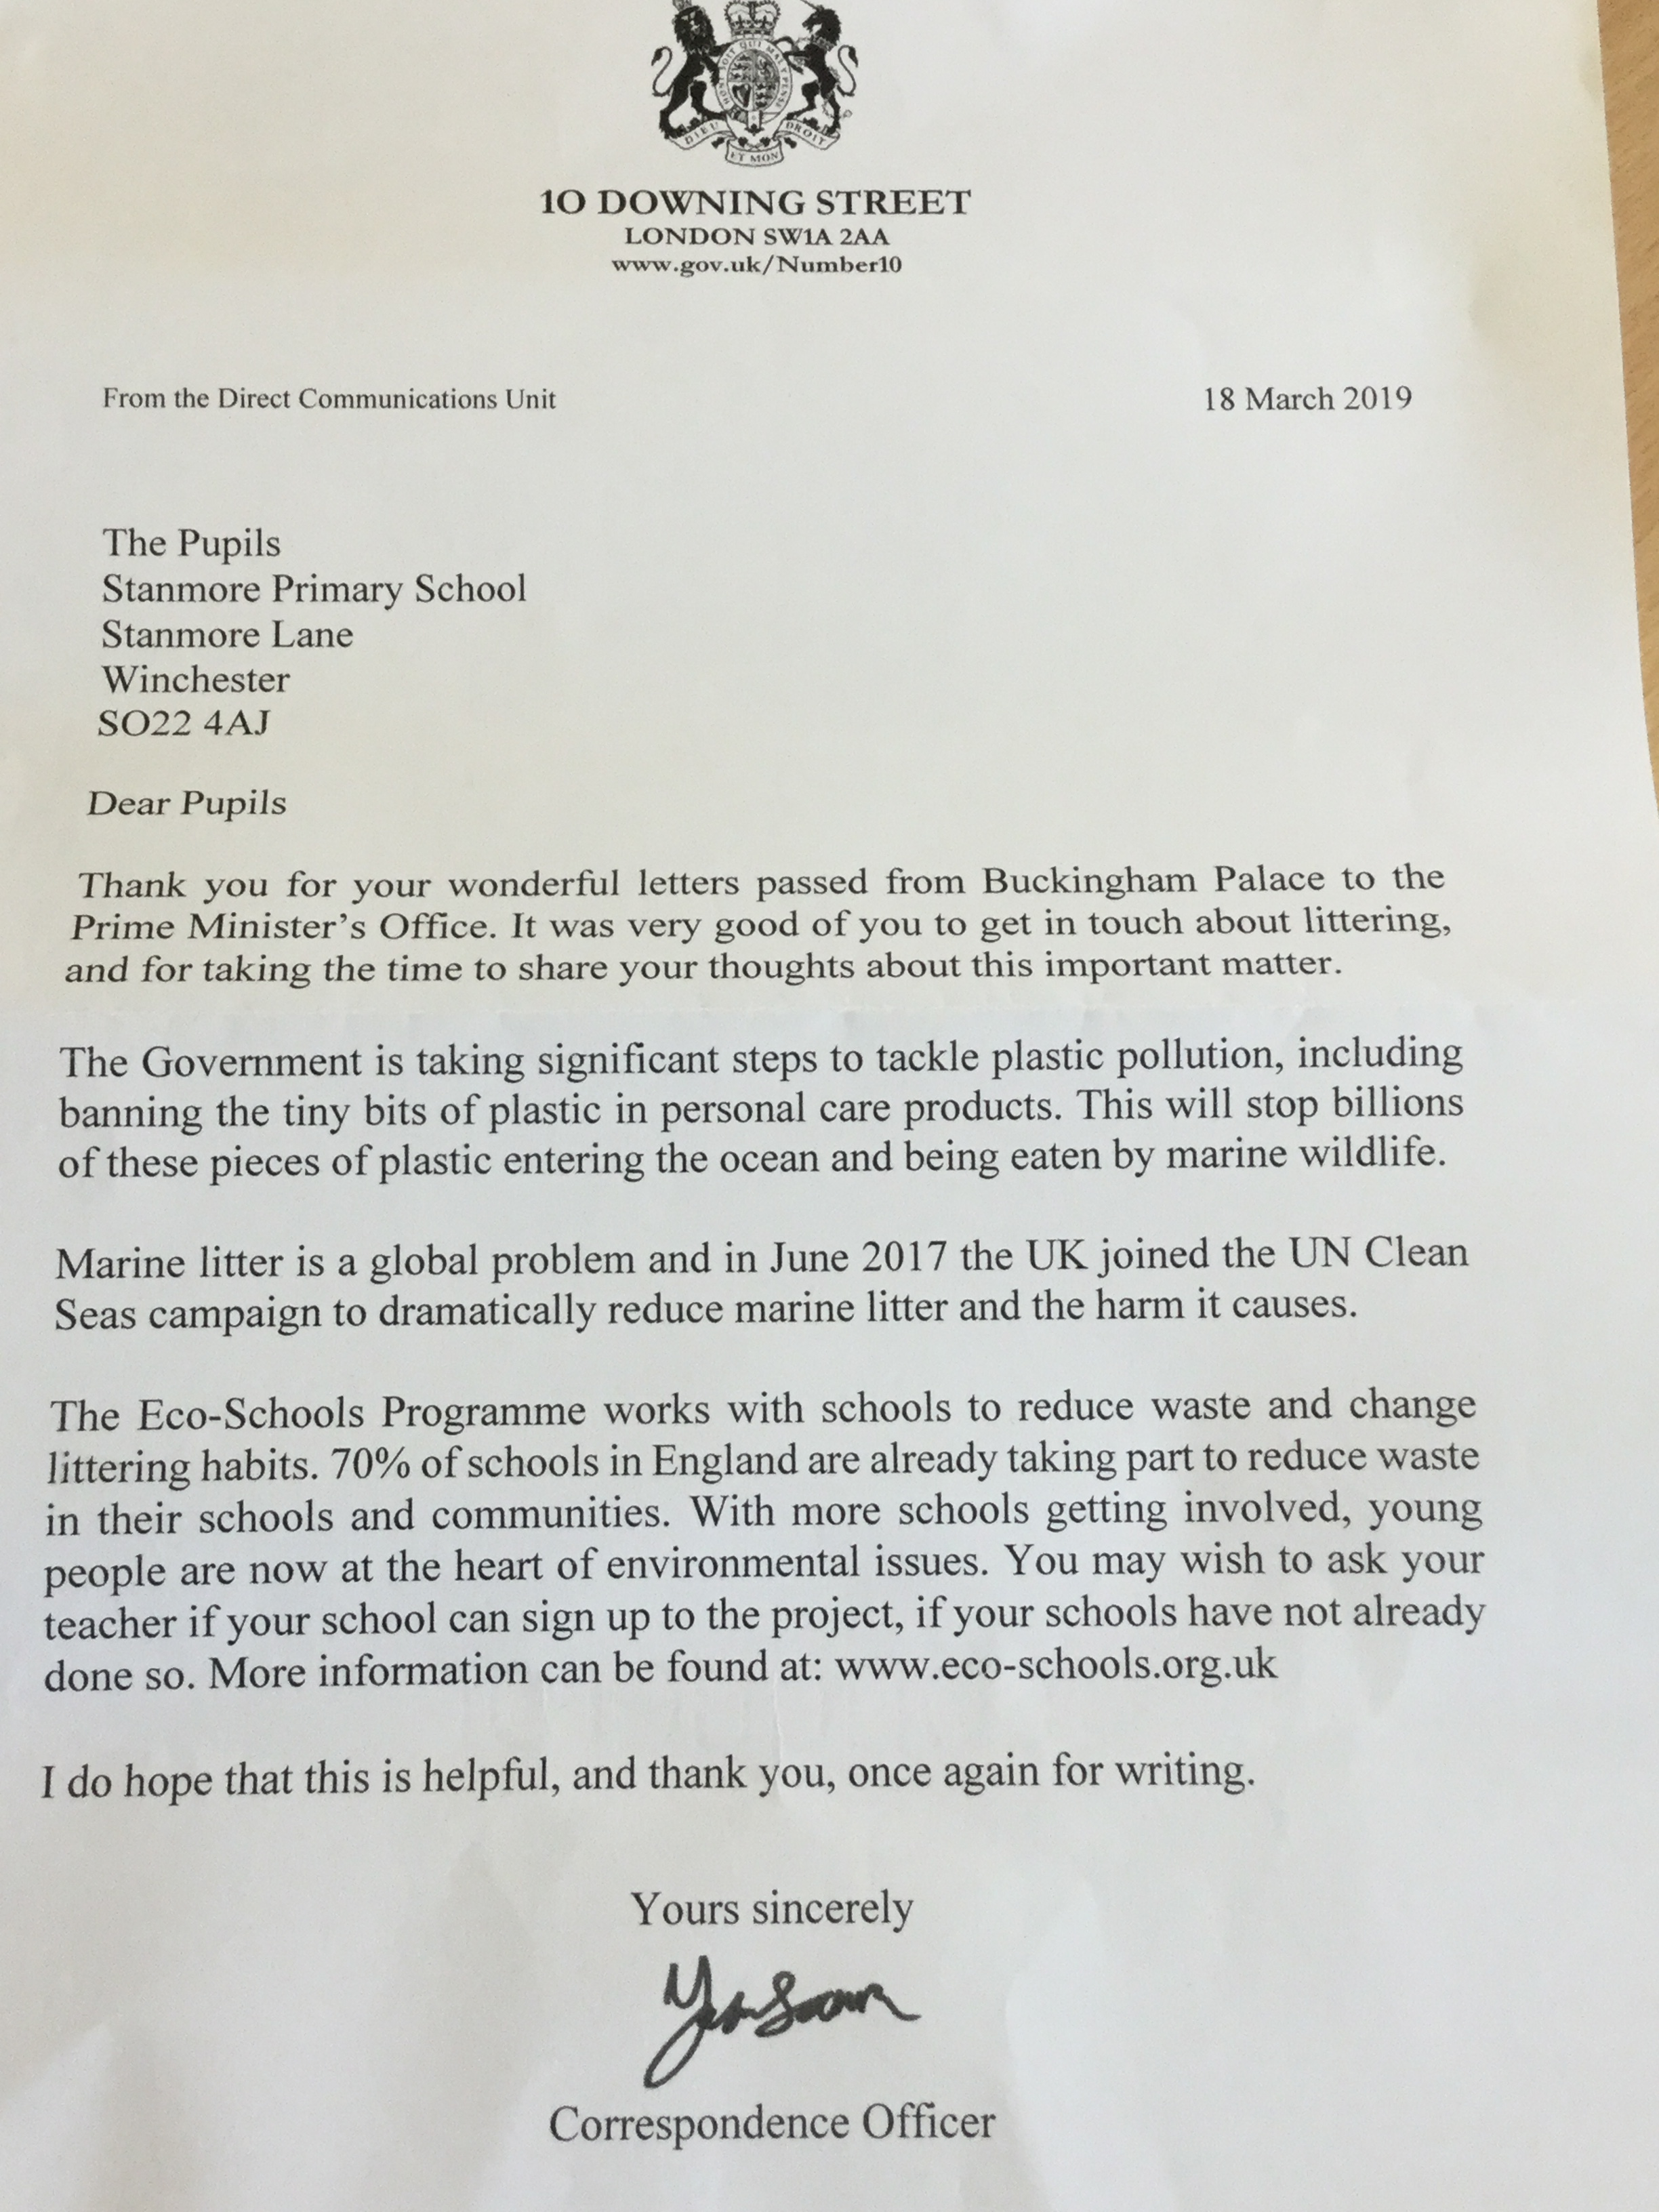 A letter from 10 Downing Street to our Year 6 pupils at Stanmore Primary